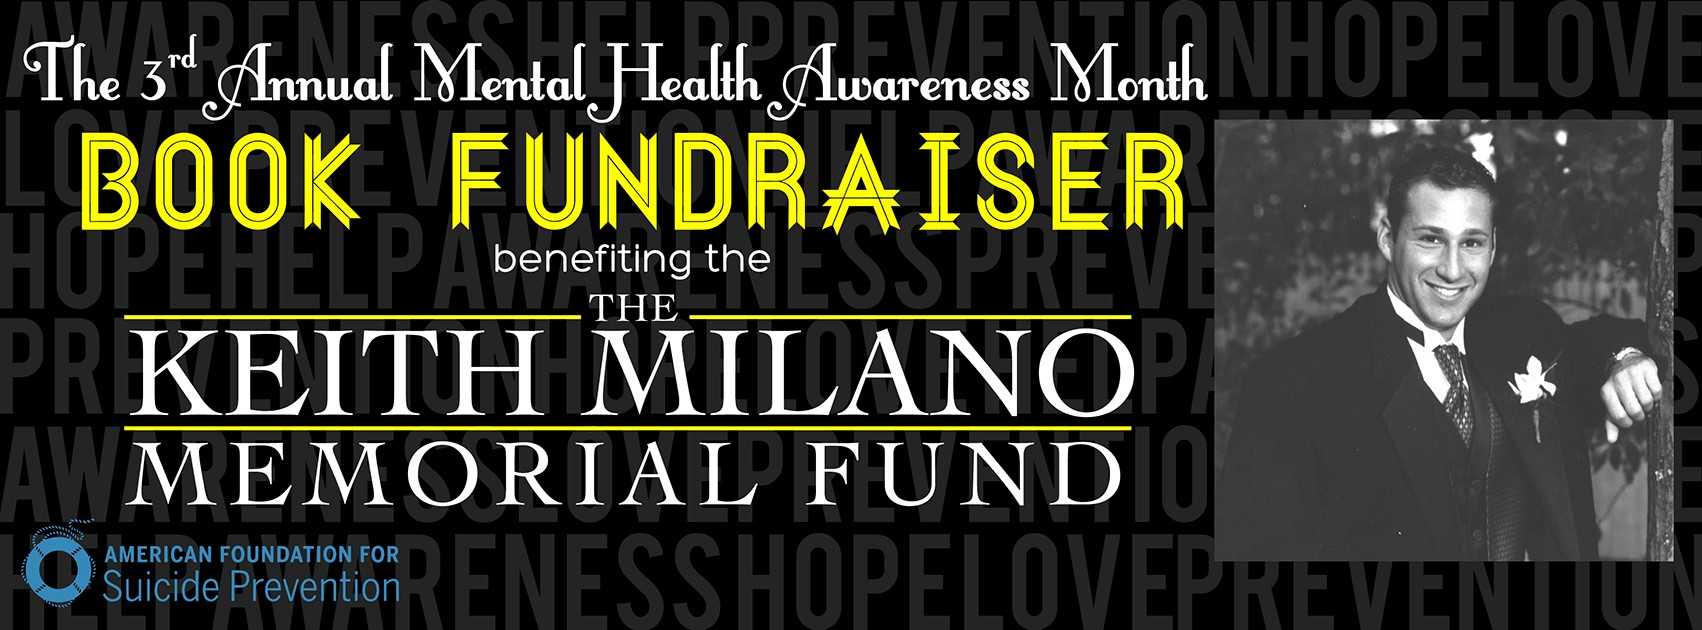 The Keith Milano Fund Banner